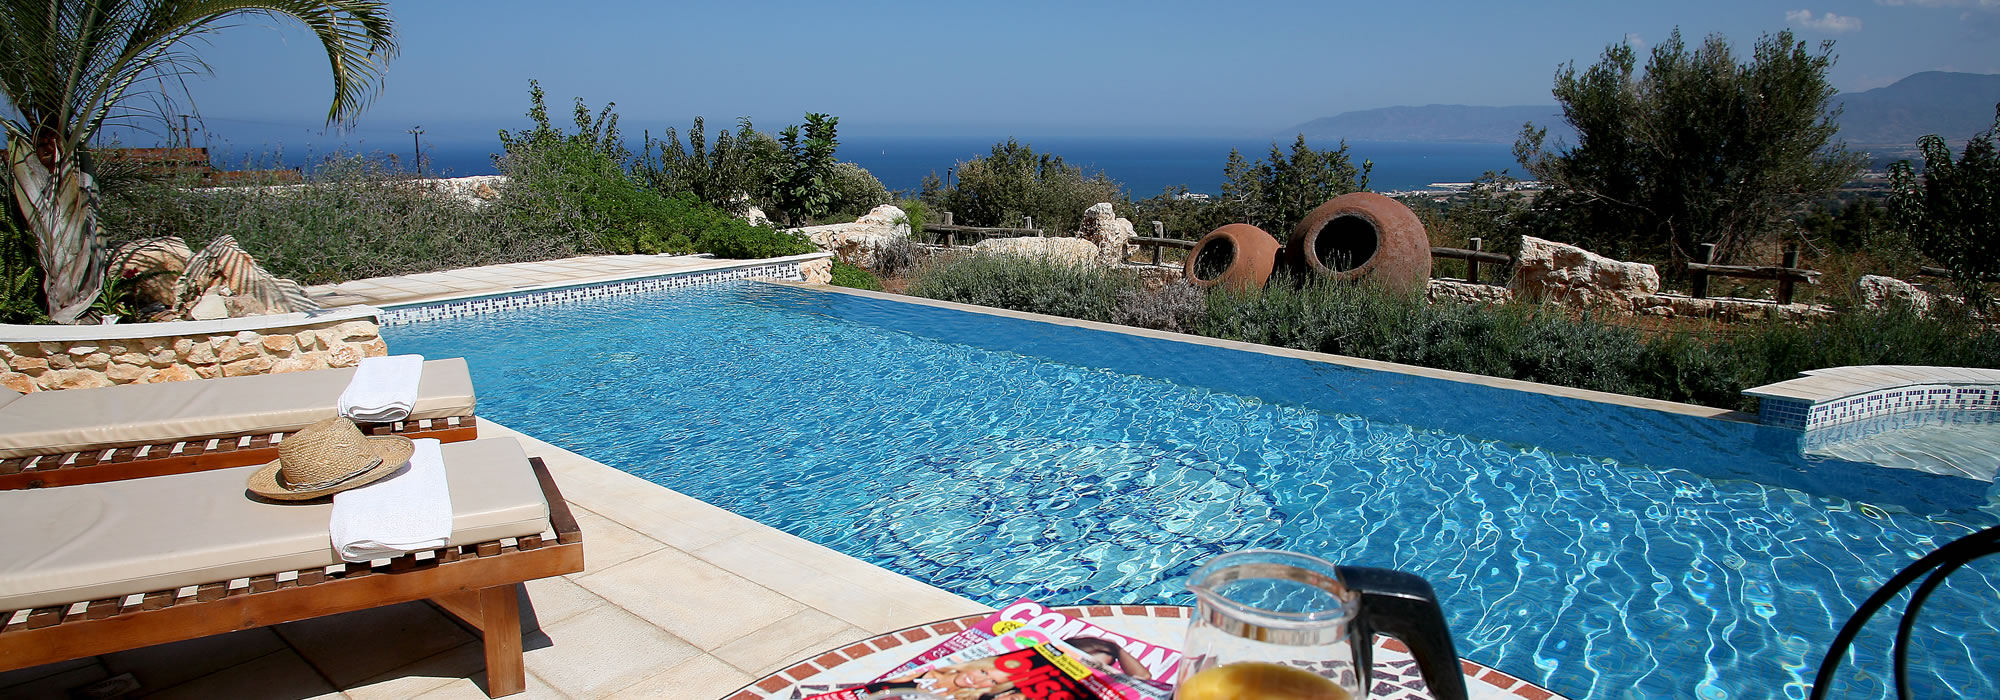 Swimming Pools Installations Cyprus